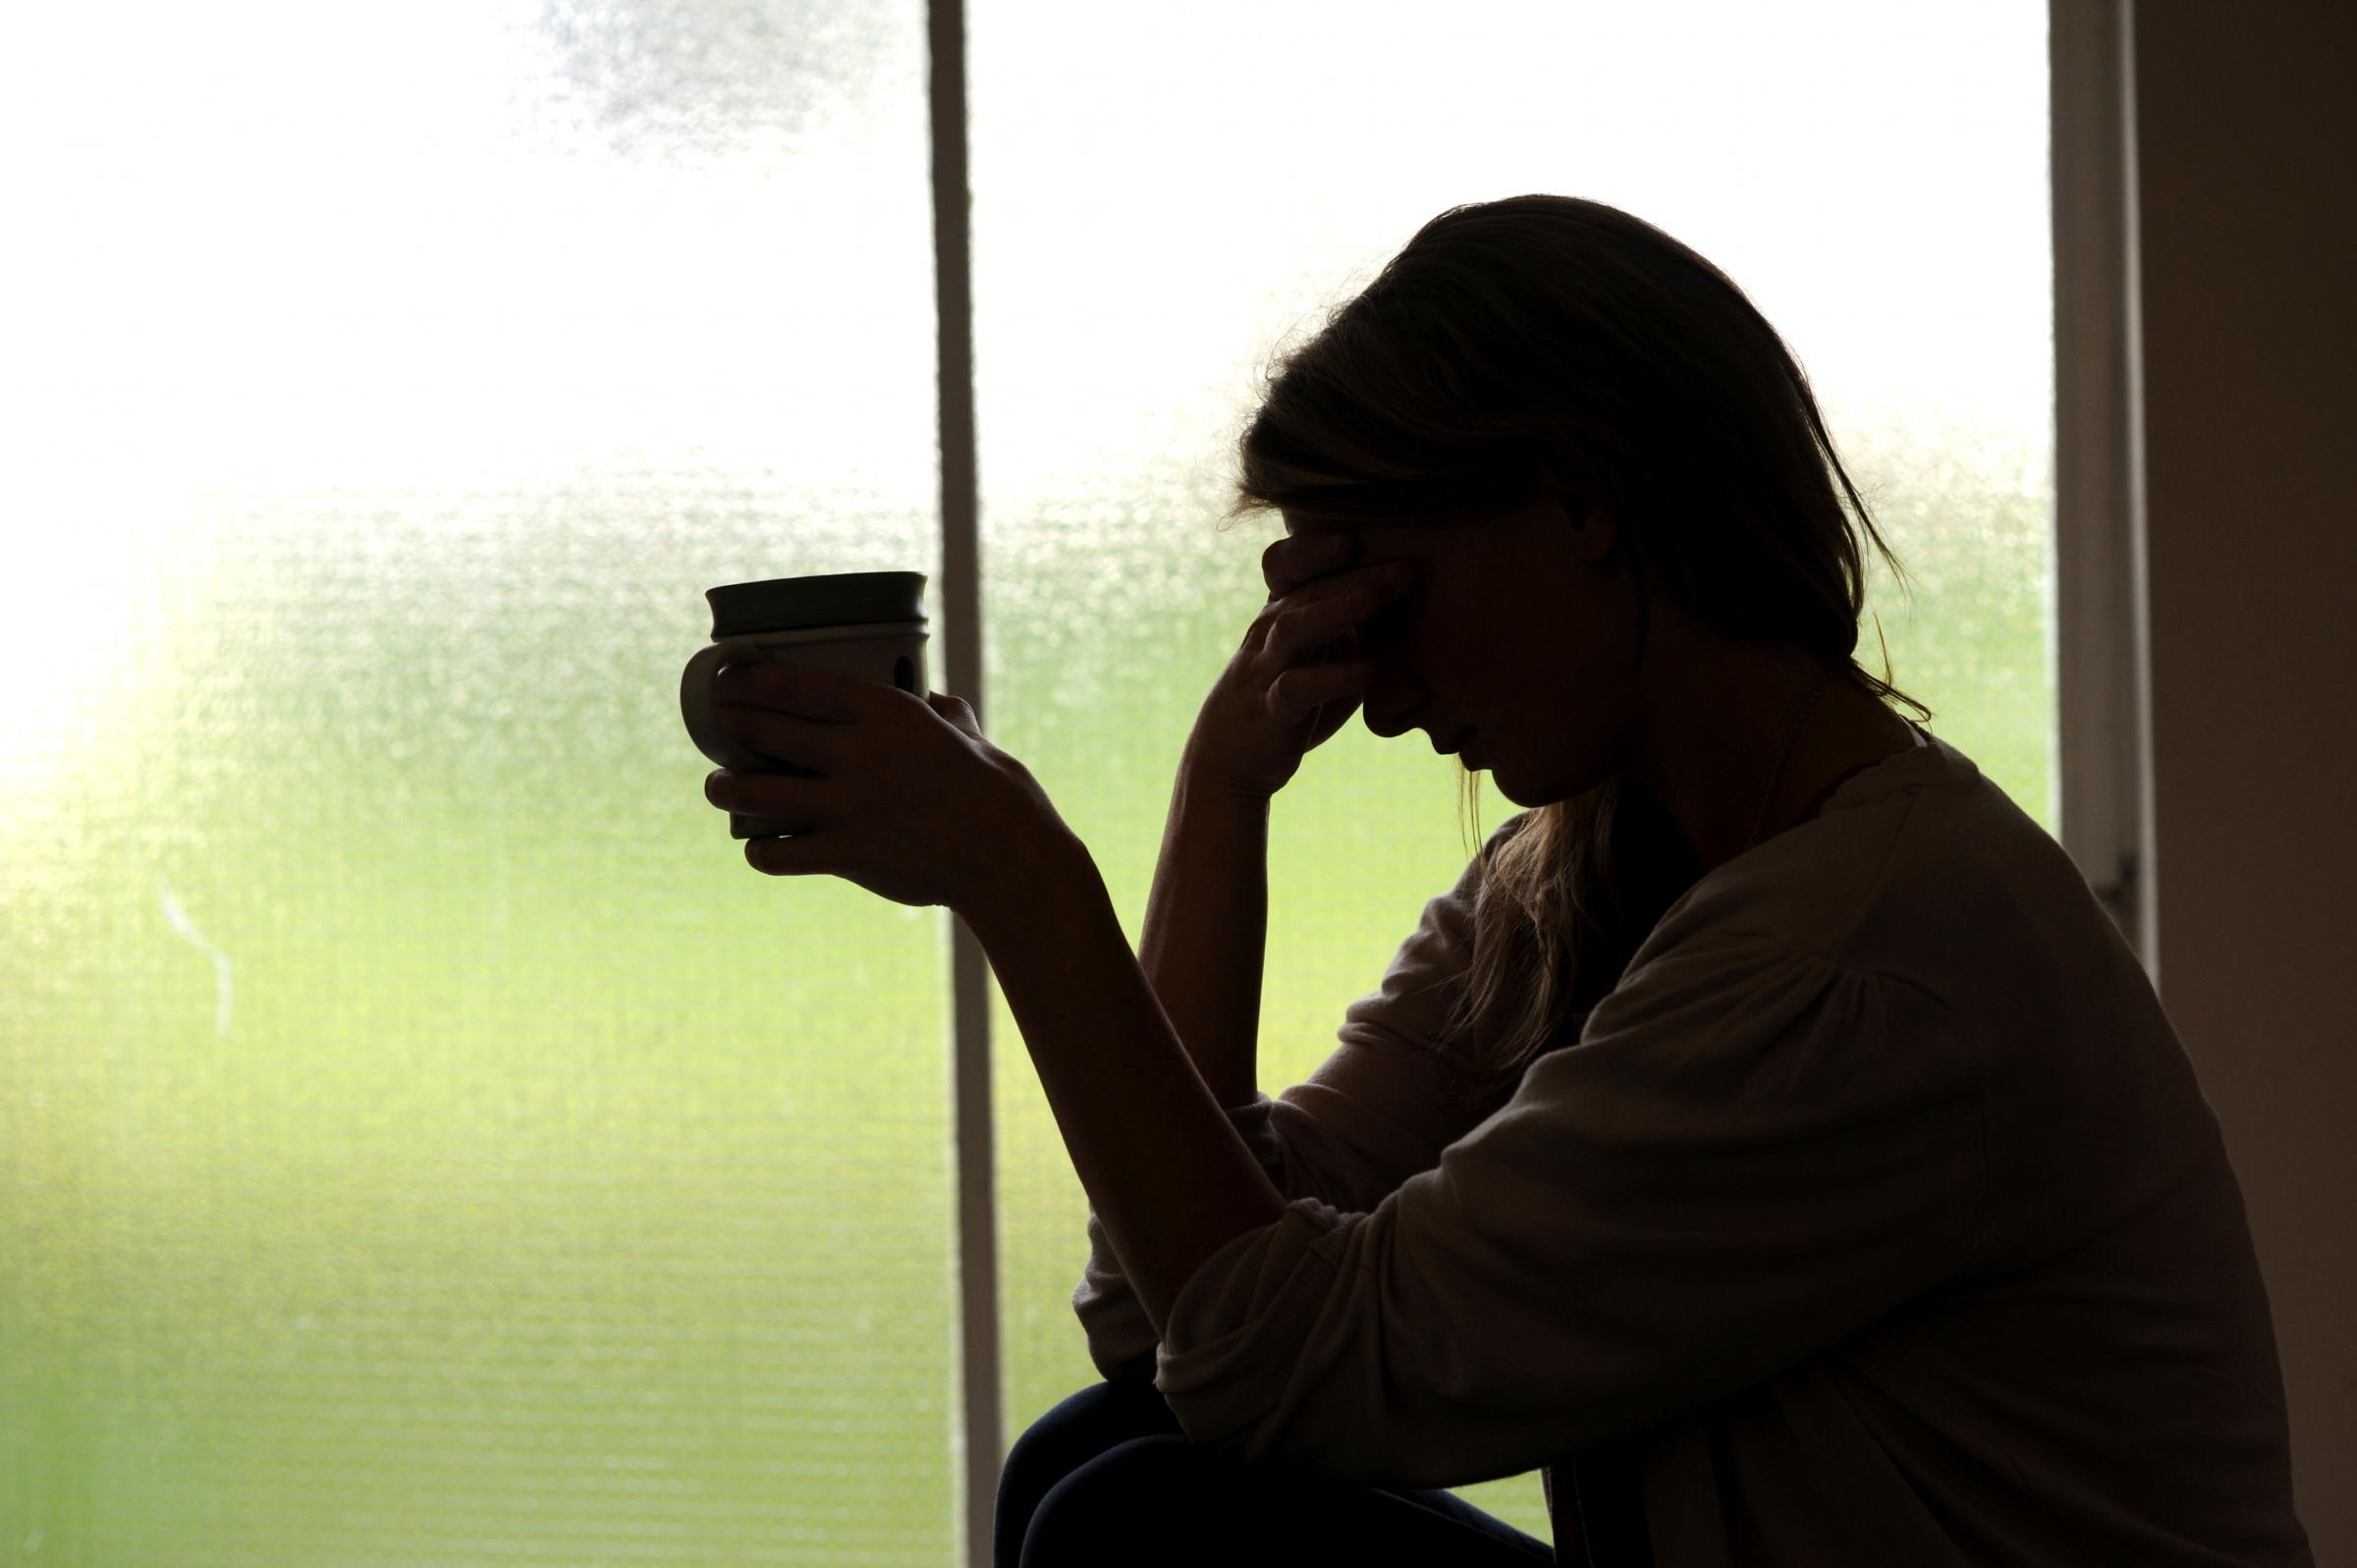 Support groups welcome changes in domestic abuse law